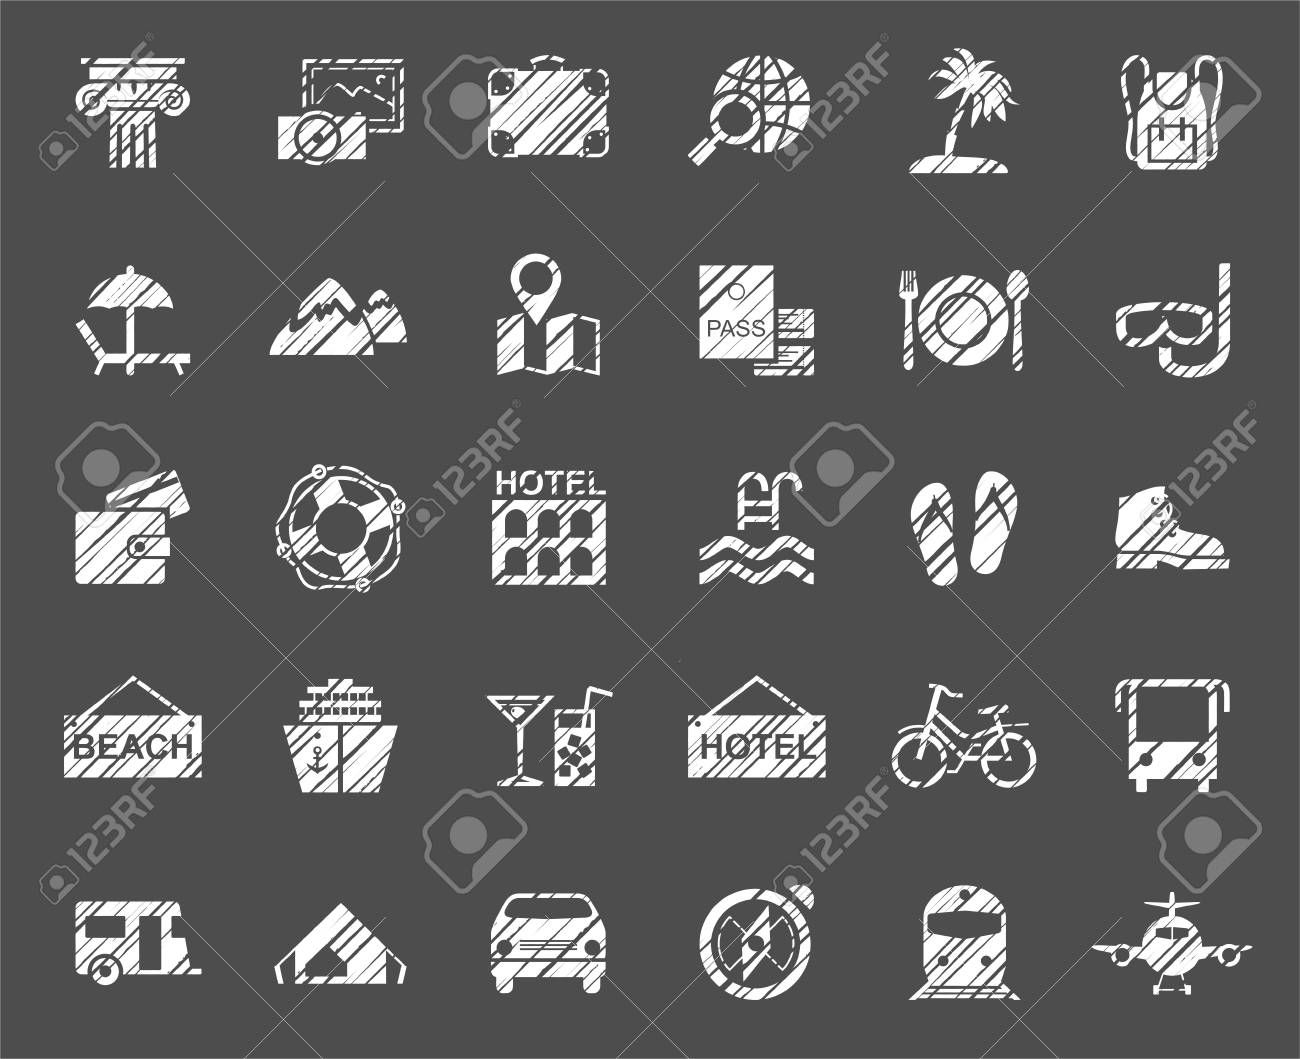 Travel Vacation Tourism Vacation Icons Pencil Shading Vector Royalty Free Cliparts Vectors And Stock Illustration Image 106340807